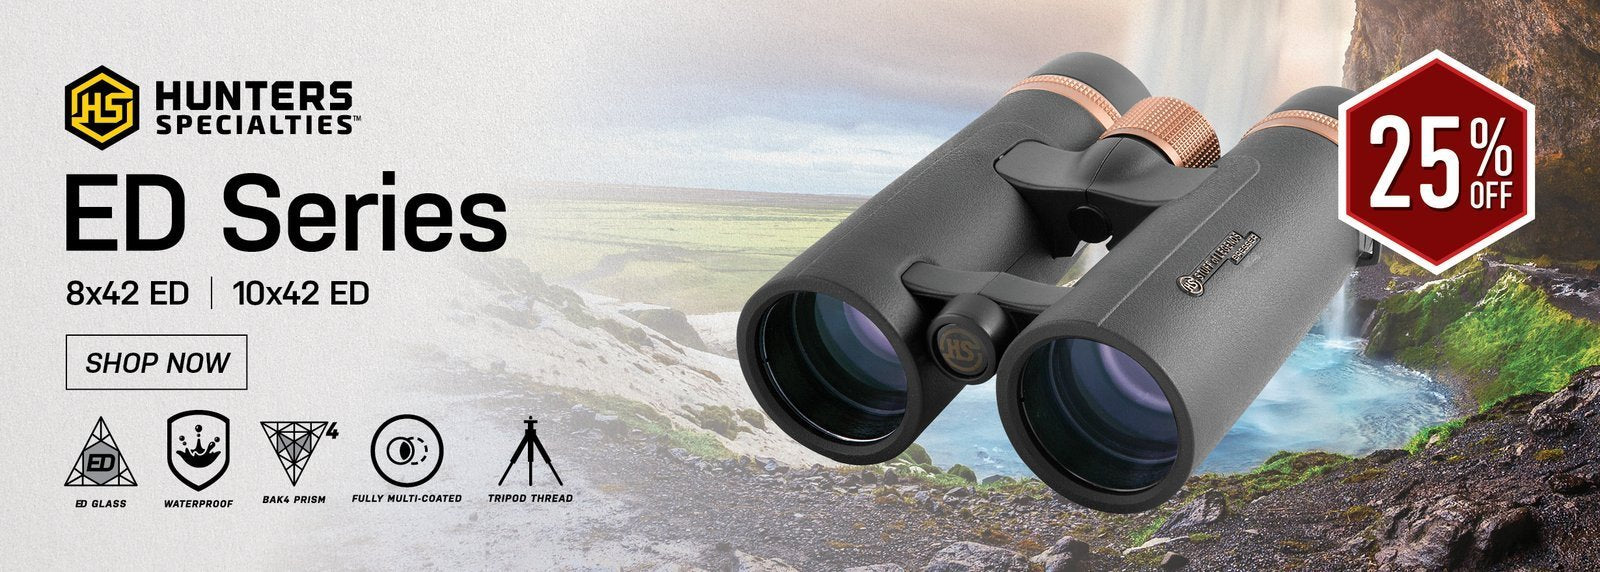 C-Series Offers Sleek Design, Excellent Optics and  Versatile Features Made for Rugged Conditions [Shop Now]